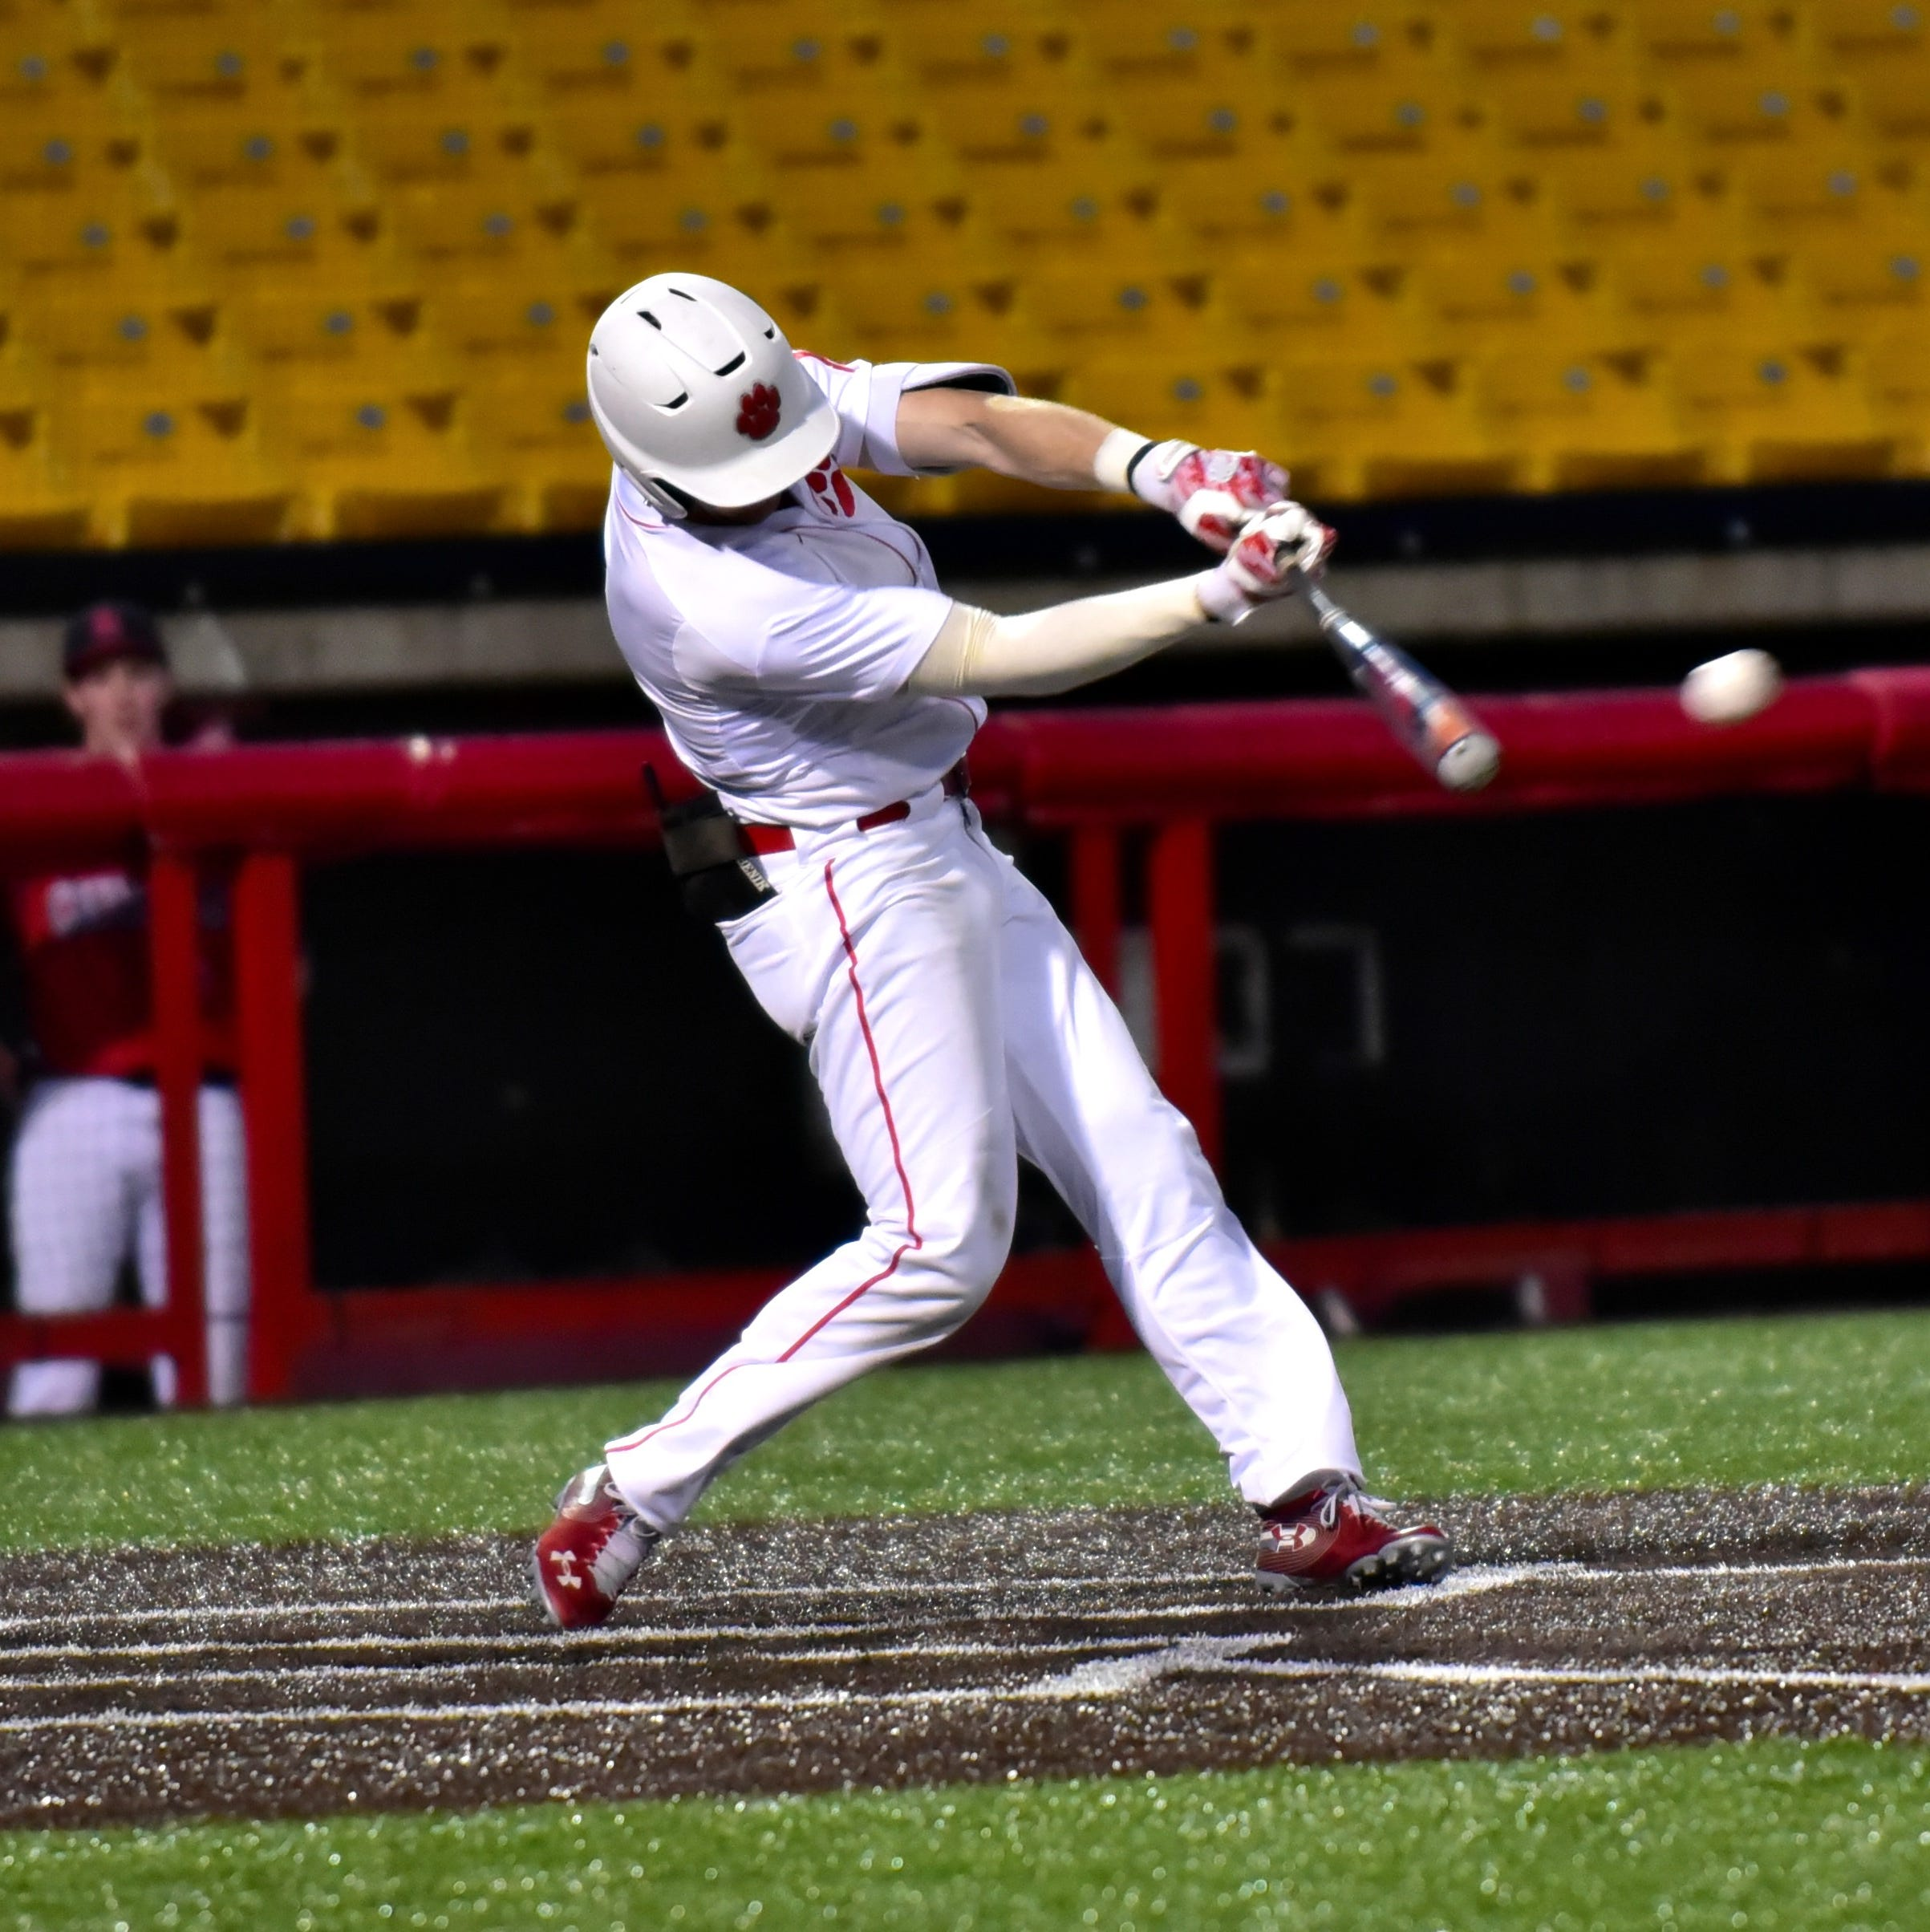 John Odom of Beechwood drives the ball to deep center field adding to the RBI total for the night as the Tigers top St. Henry 10-2 in the championship game of the 9th Region All A Classic Championship played at UC Health Stadium in Florence, KY, April 9, 2019.